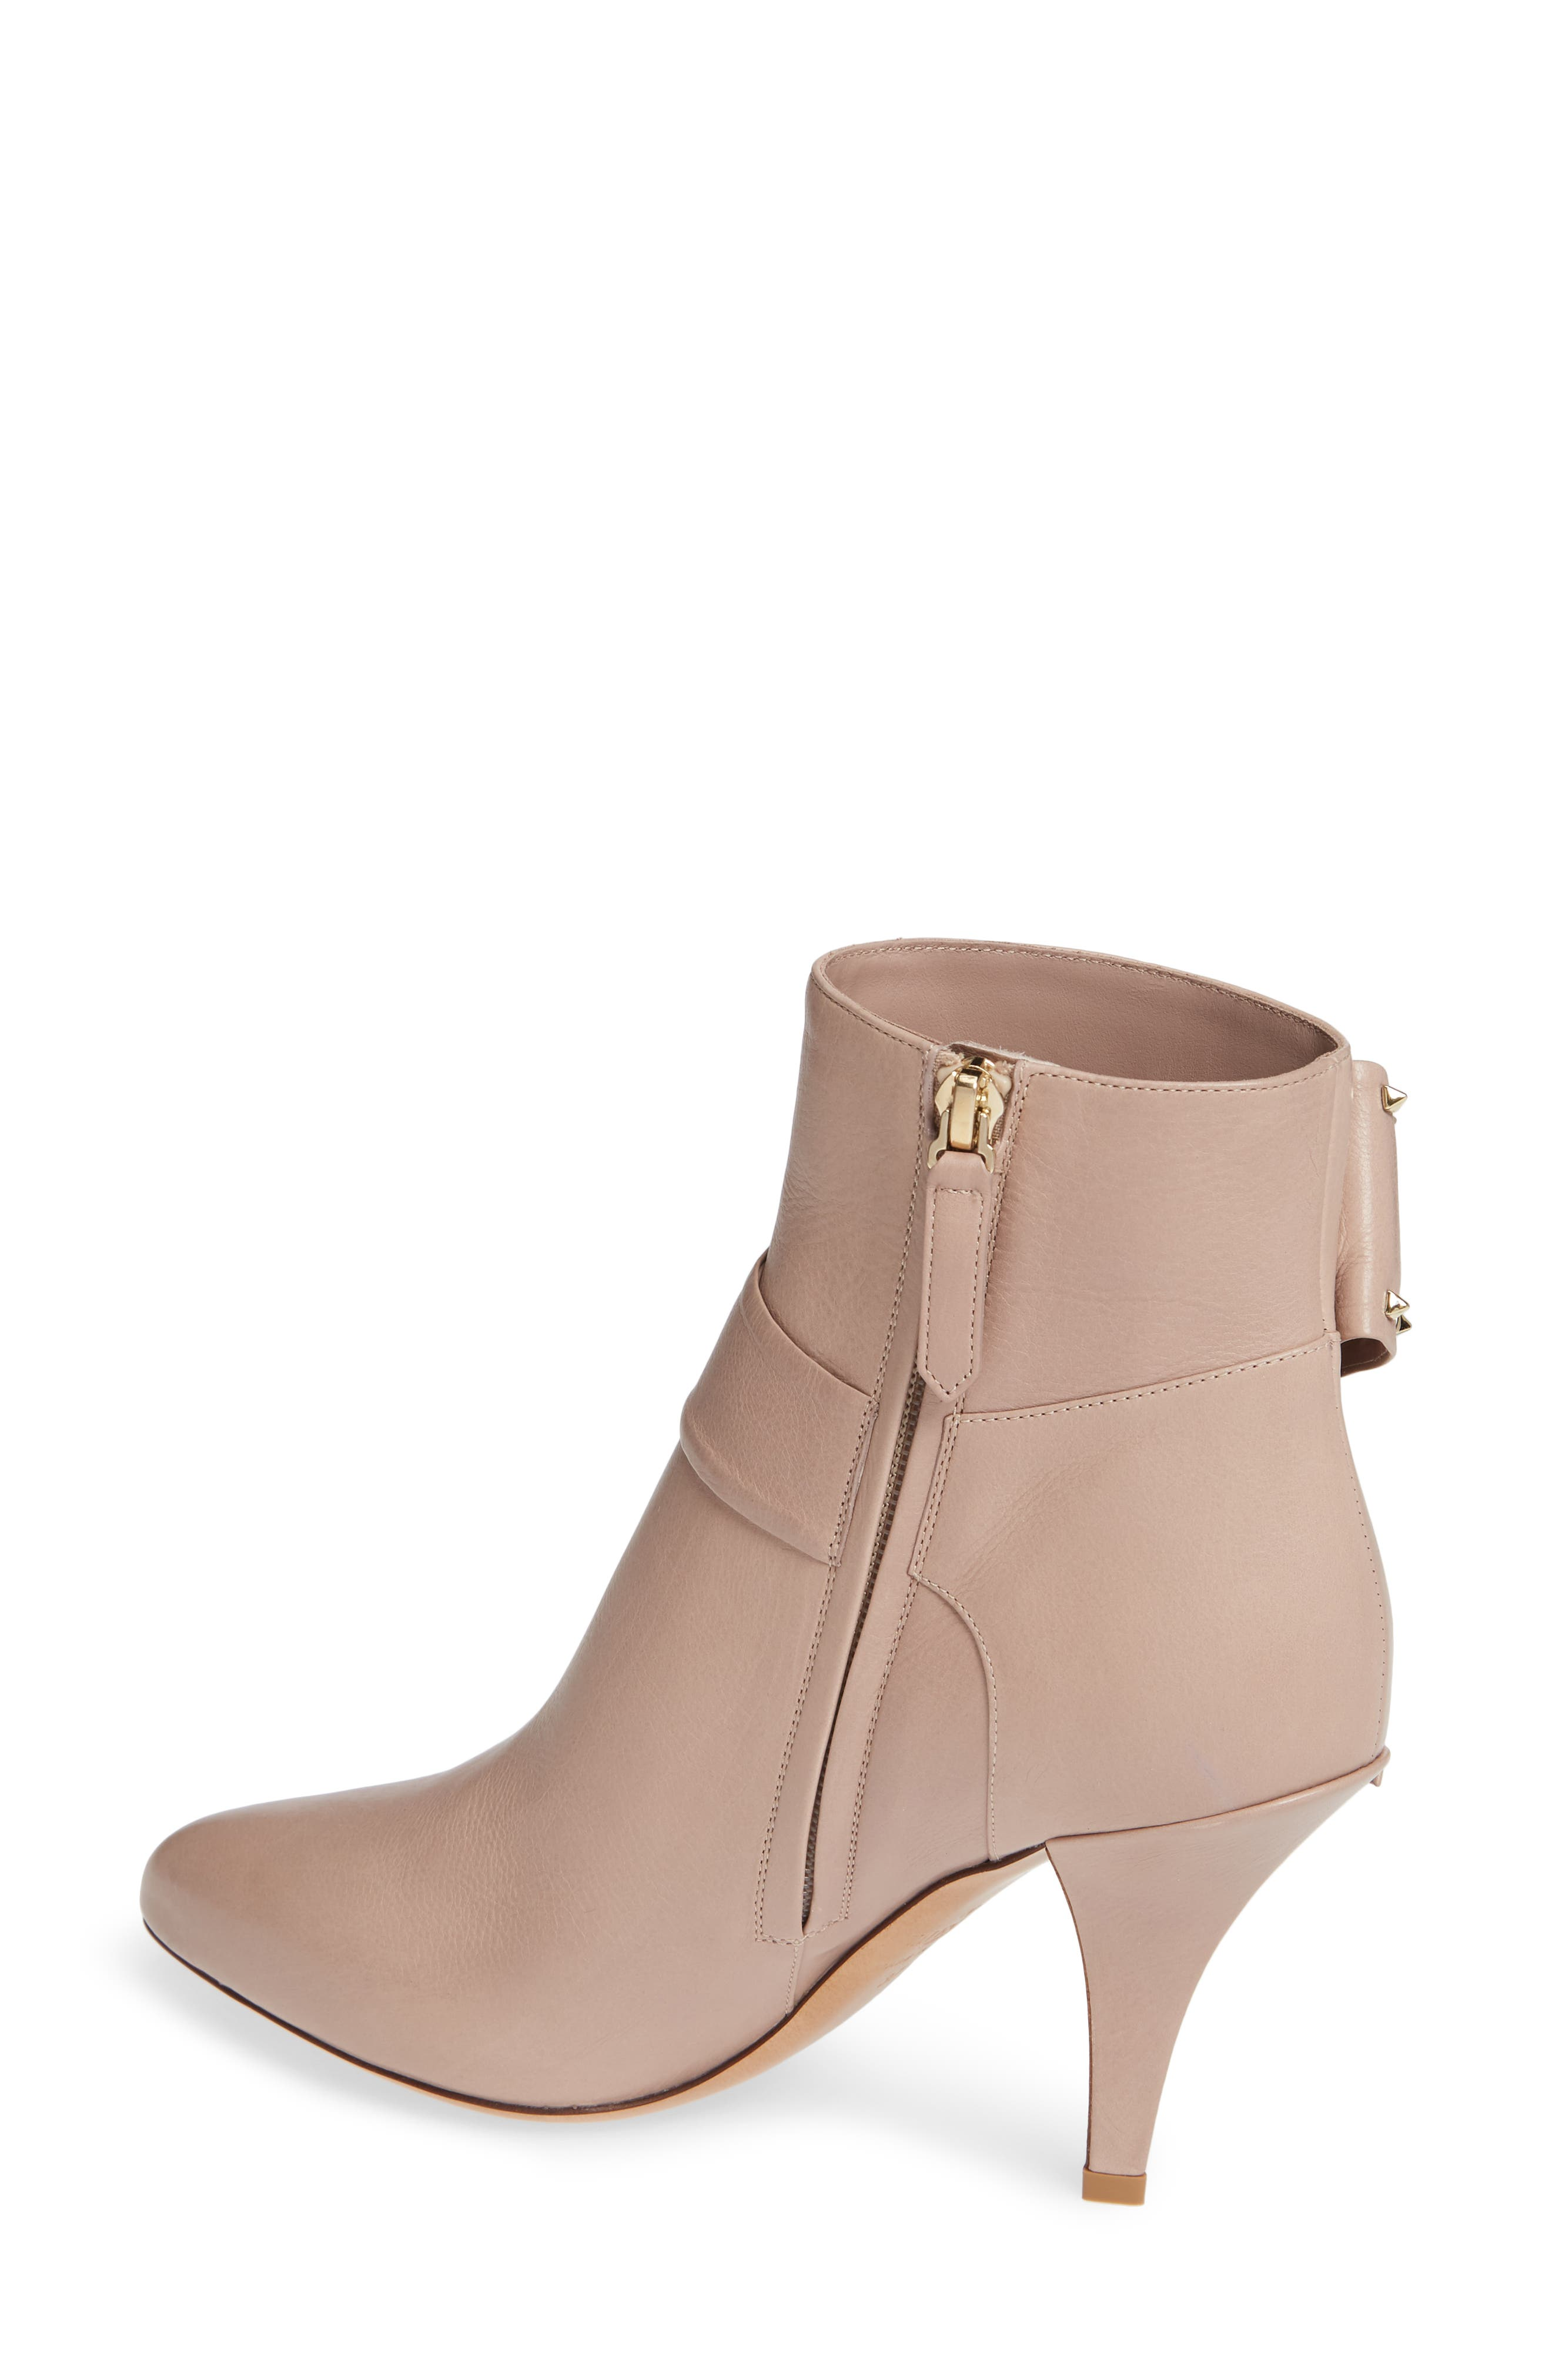 Studded Bow Ankle Bootie,                             Alternate thumbnail 2, color,                             250